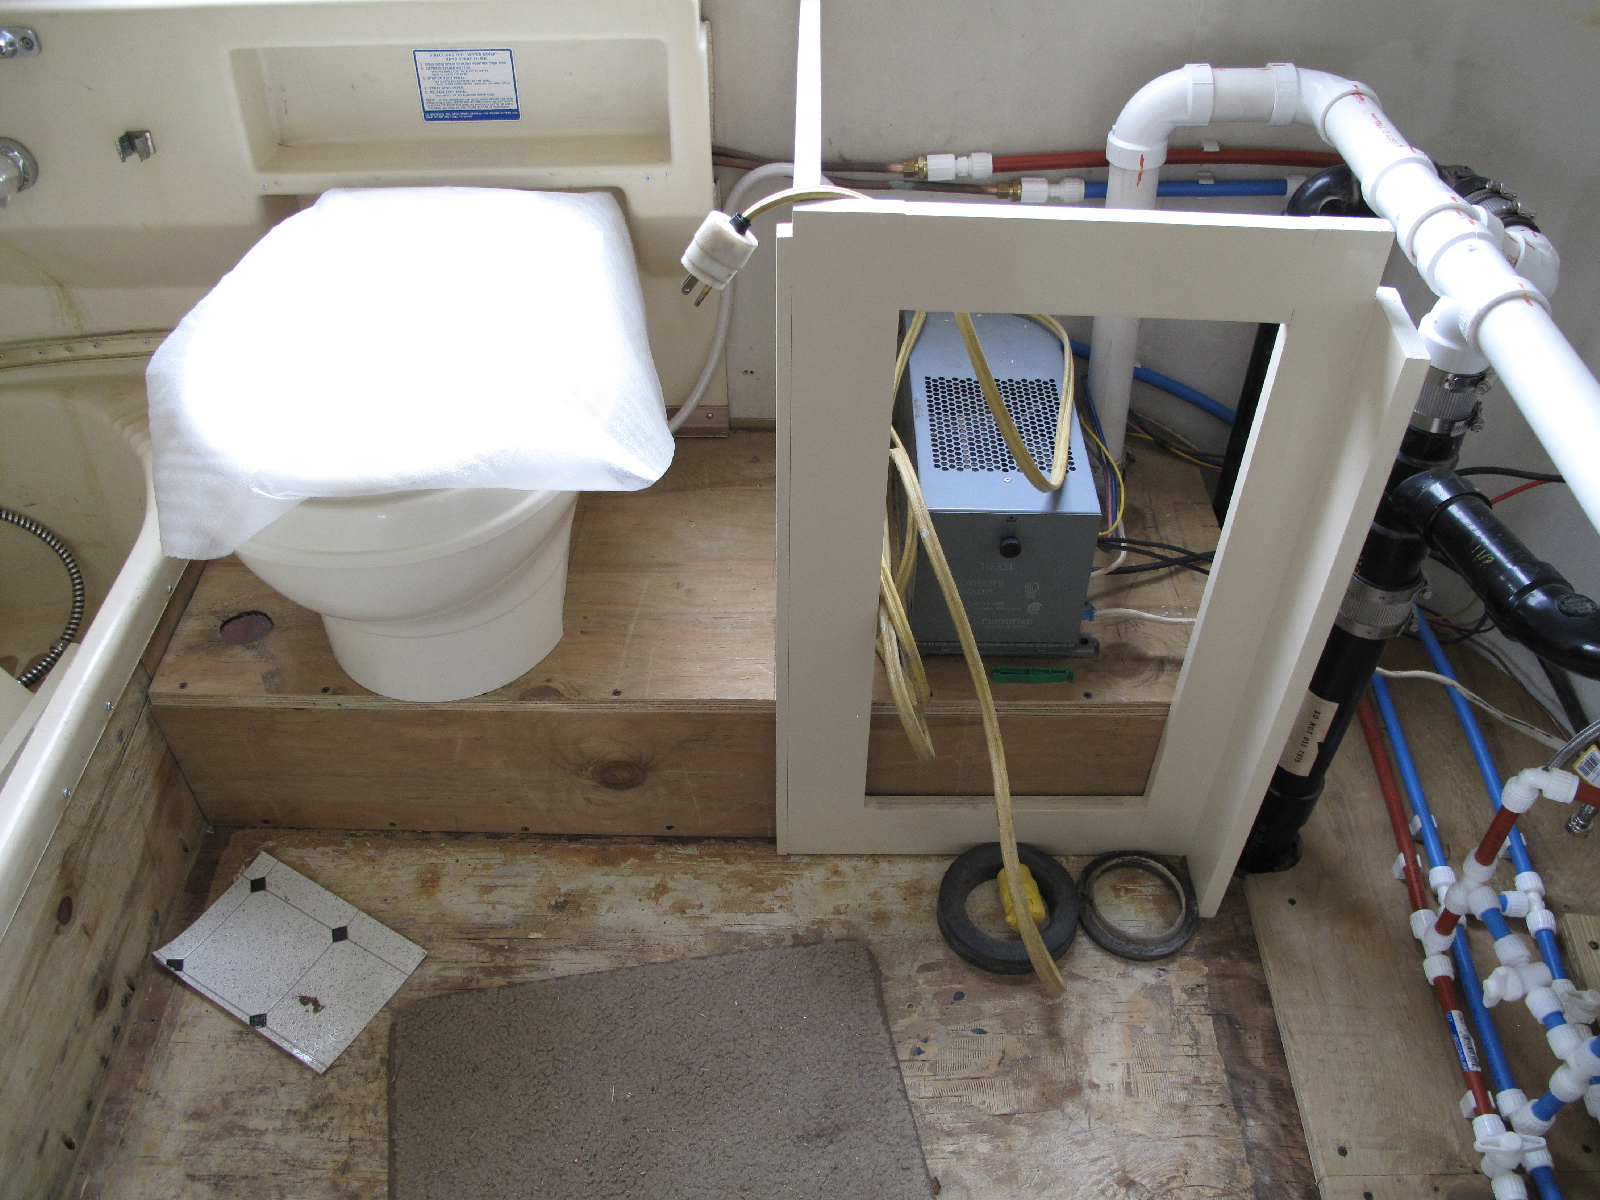 Click image for larger version  Name:New Toilet.jpg Views:75 Size:974.2 KB ID:95506